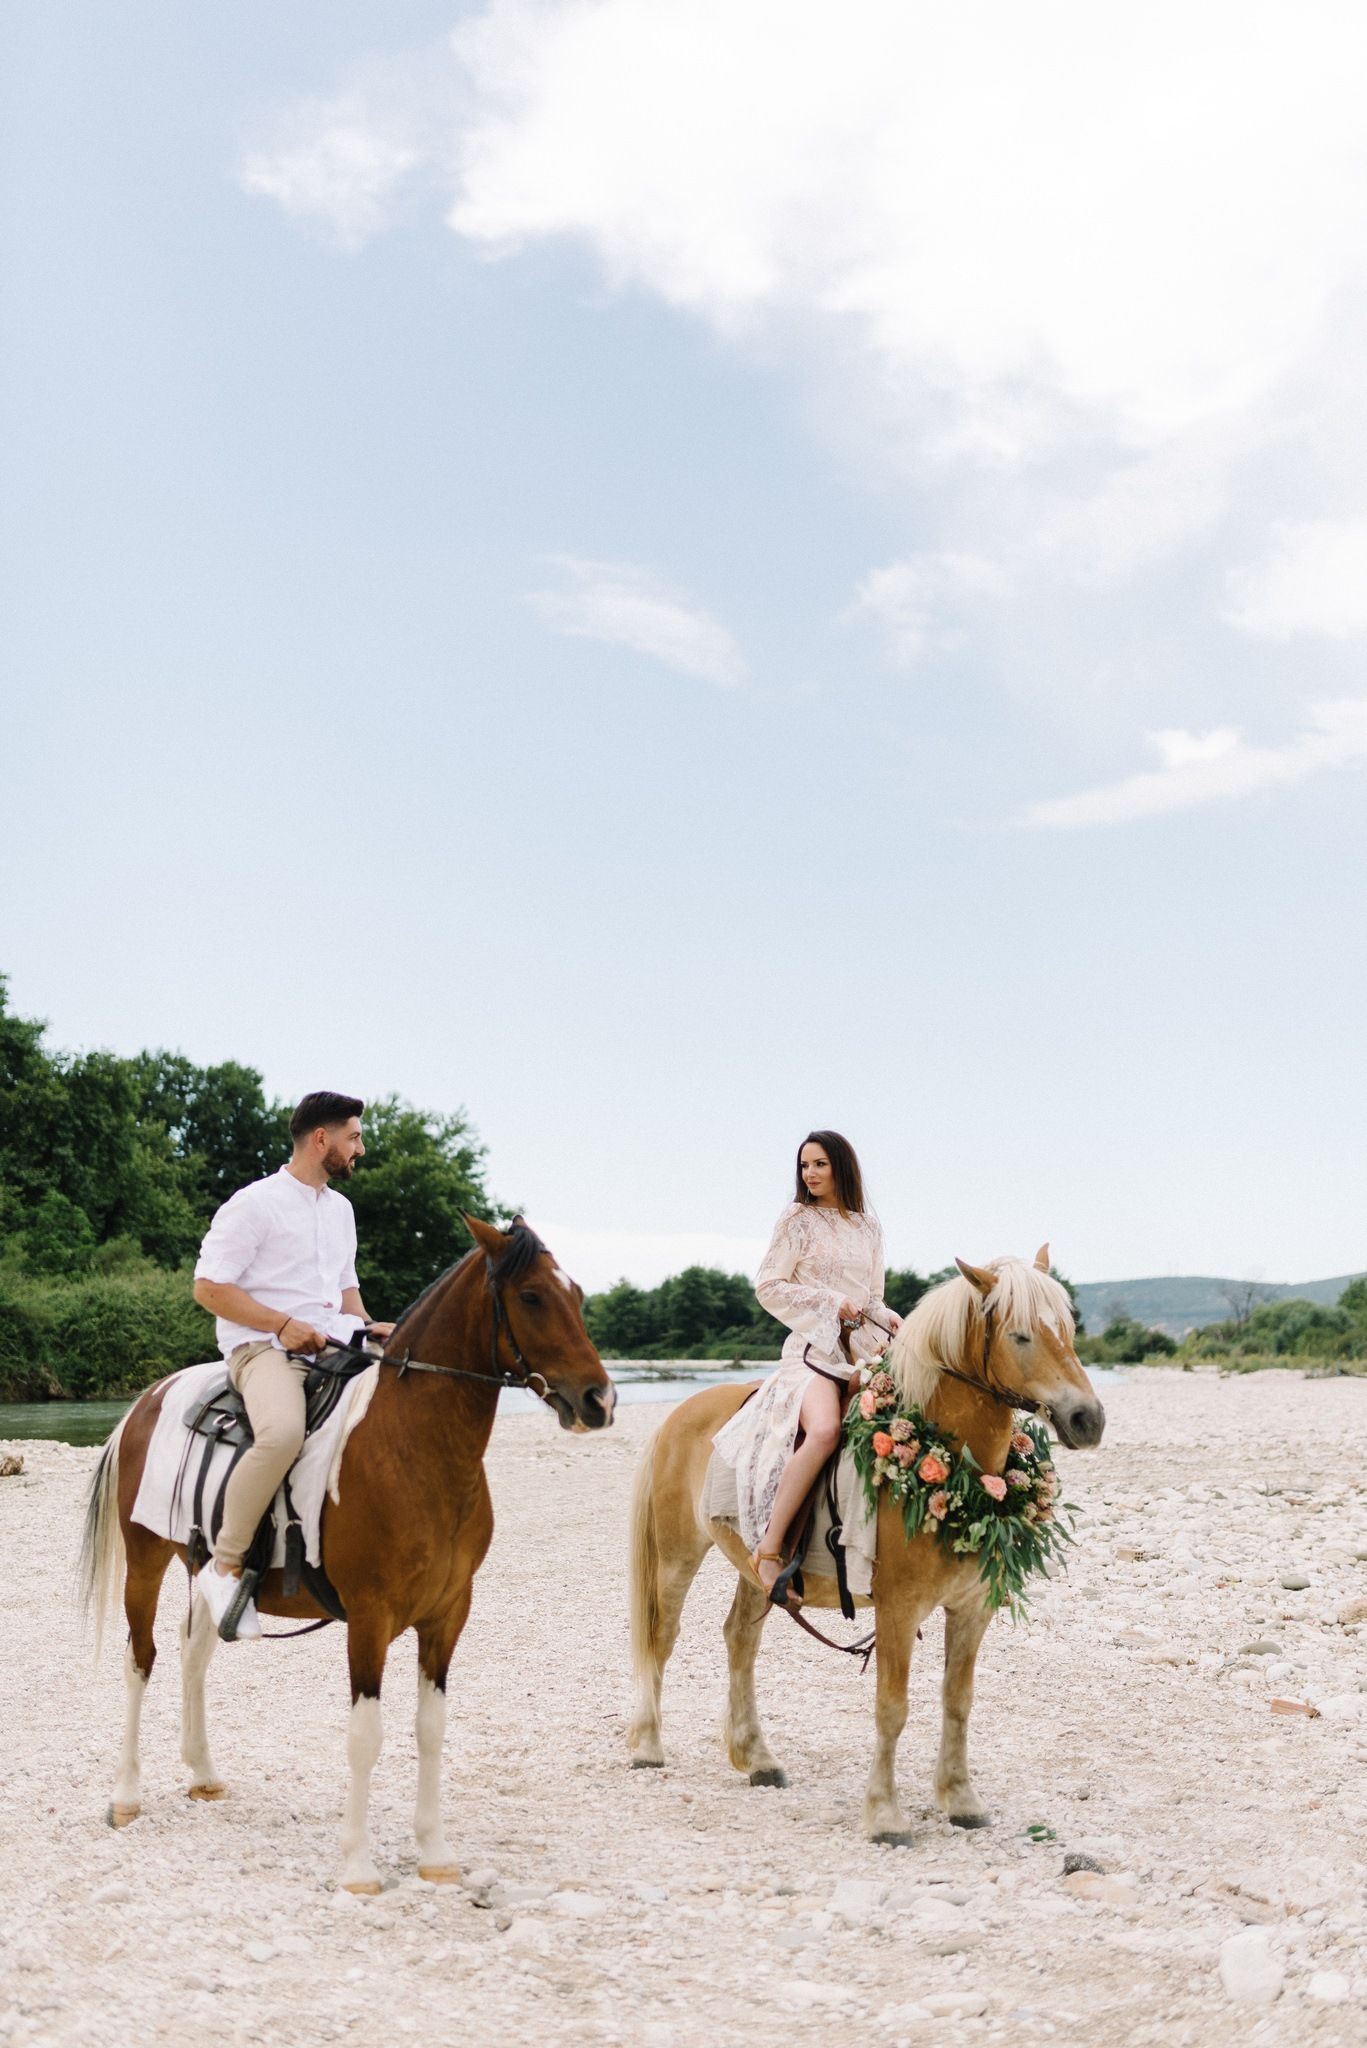 couple riding horses in acheron river in greece